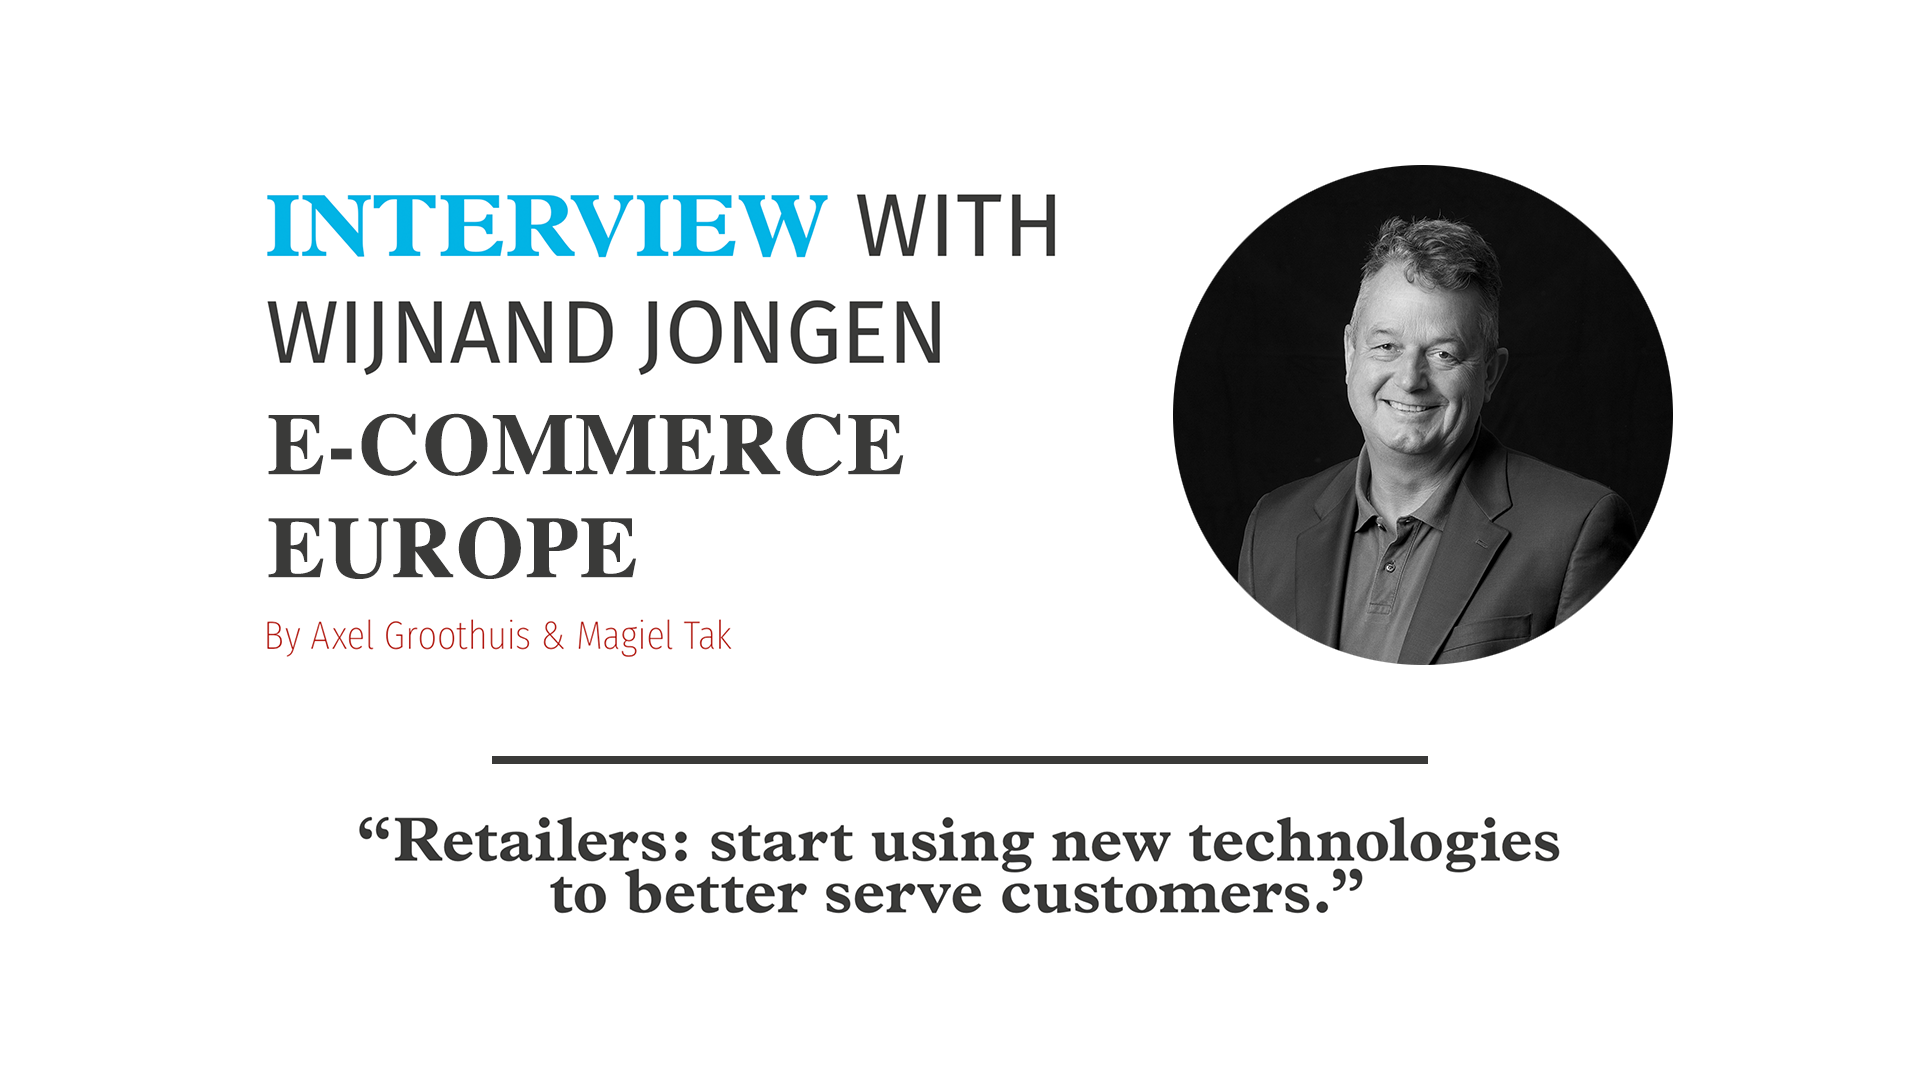 E-commerce Europe interview – Nextcontinent 2018